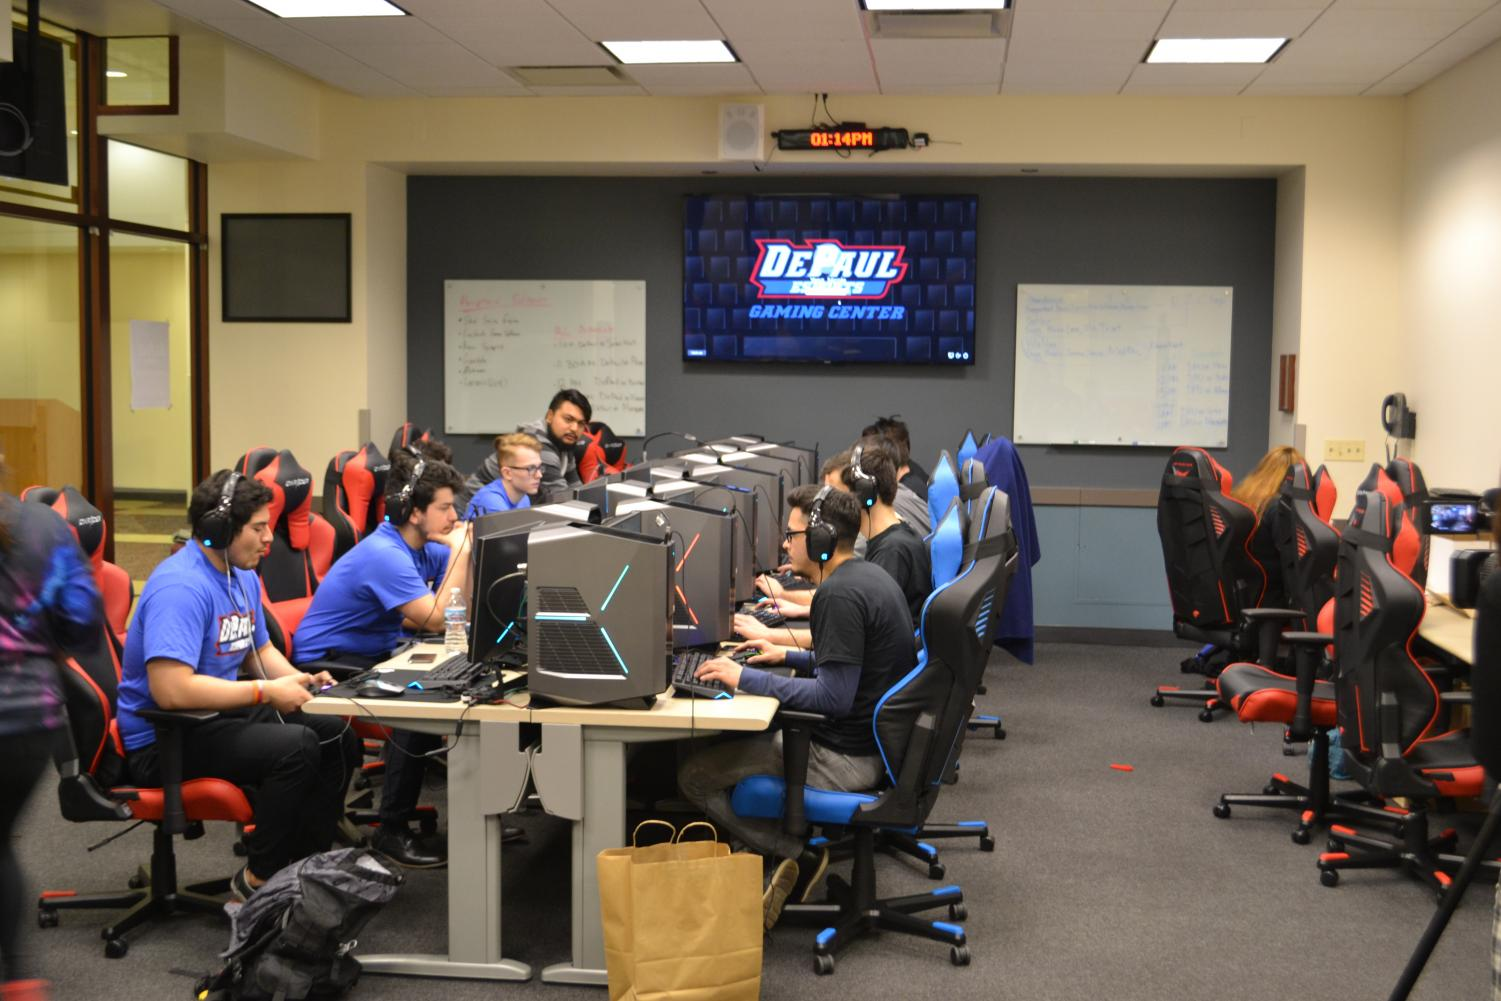 DePaul will unveil its new gaming center on Monday at 2 p.m to the DePaul community. (Andrew Hattersley | The DePaulia)